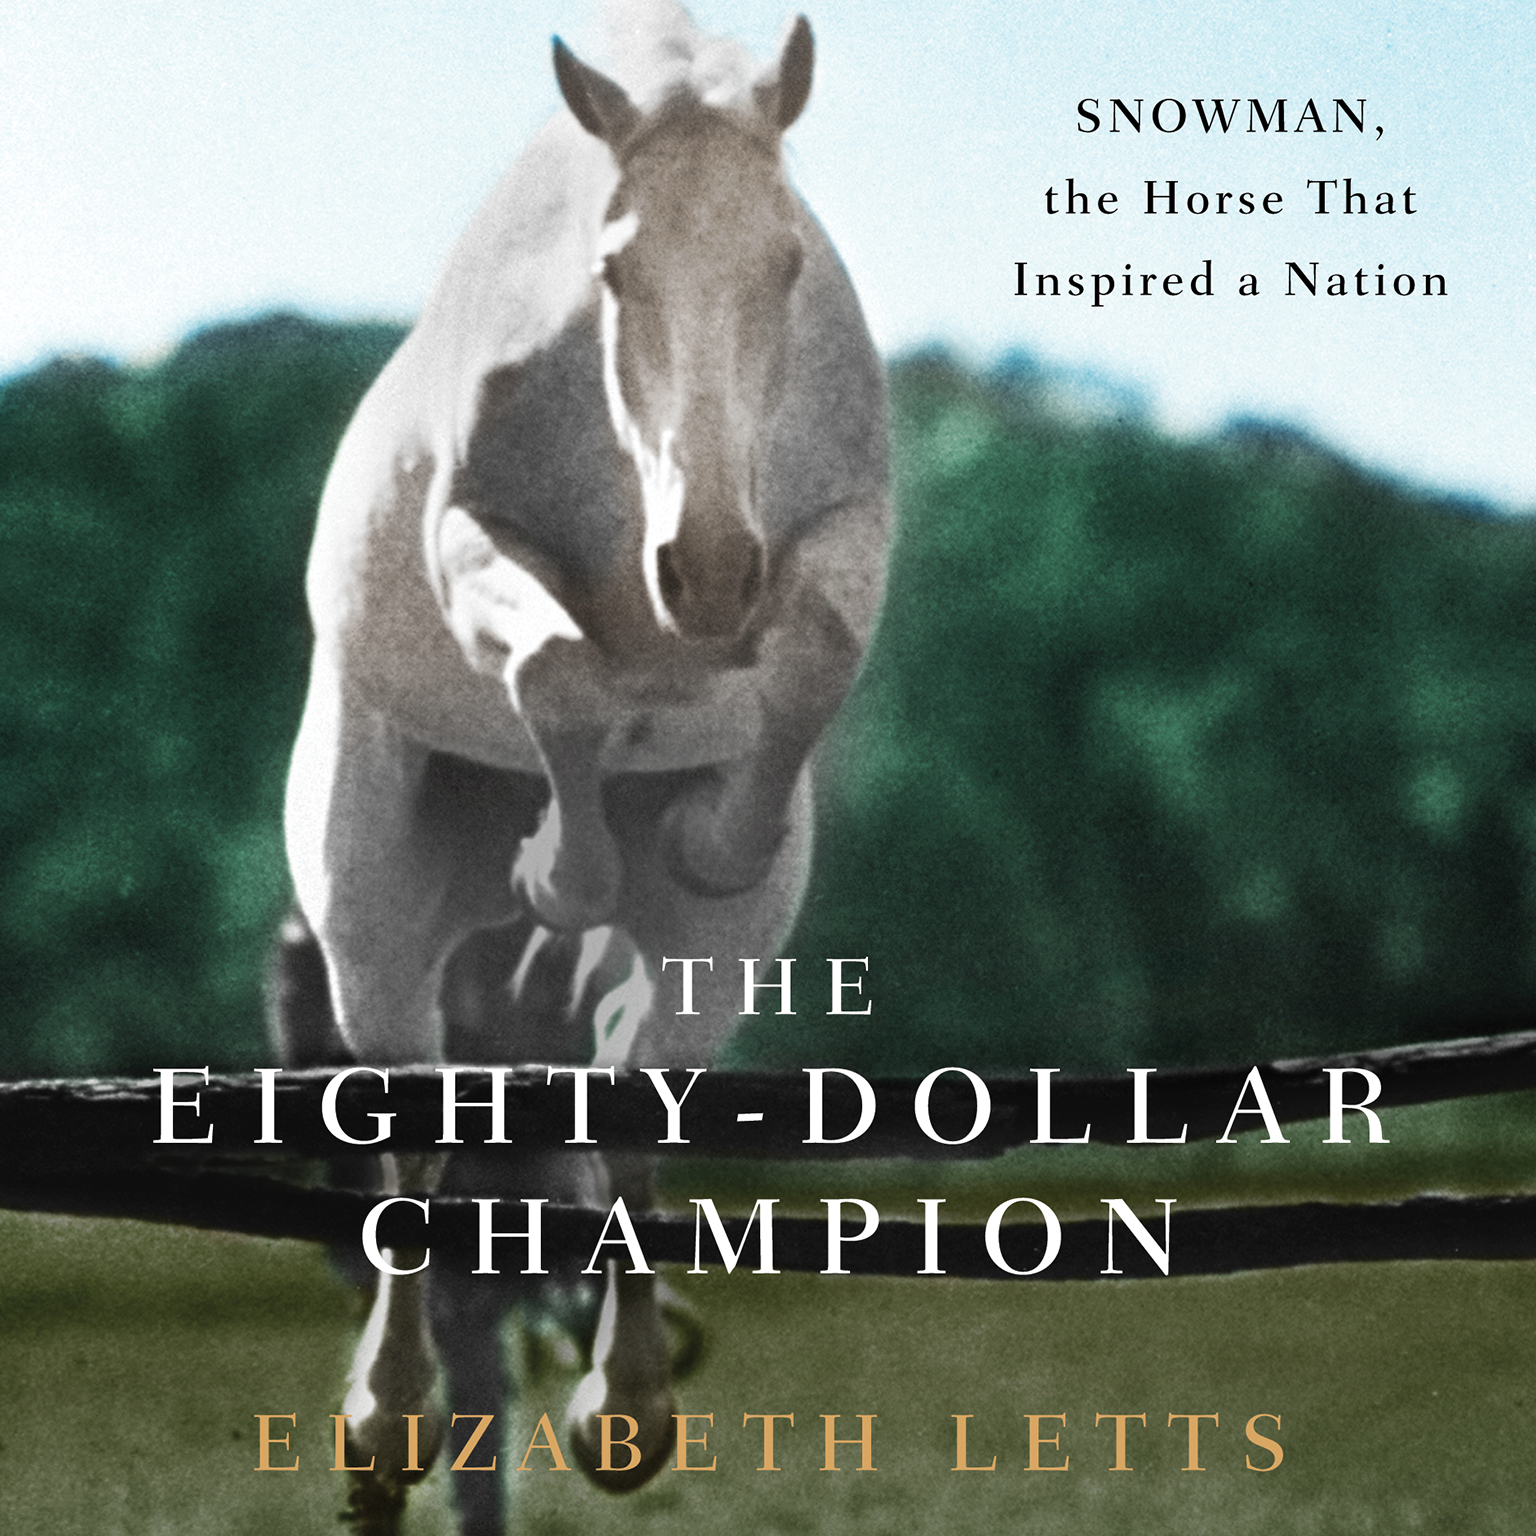 Printable The Eighty-Dollar Champion: Snowman, the Horse That Inspired a Nation Audiobook Cover Art